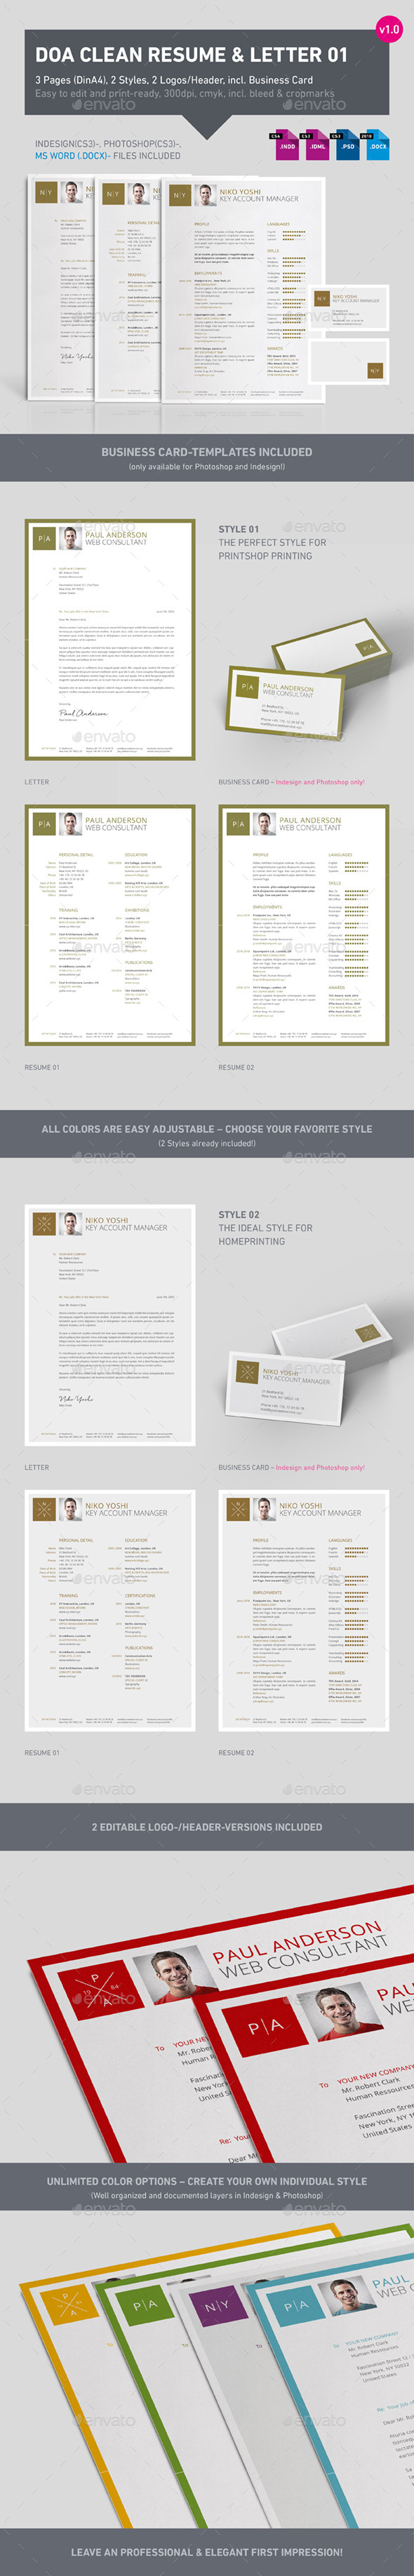 Clean 3-Part Resume 01 - Resumes Stationery